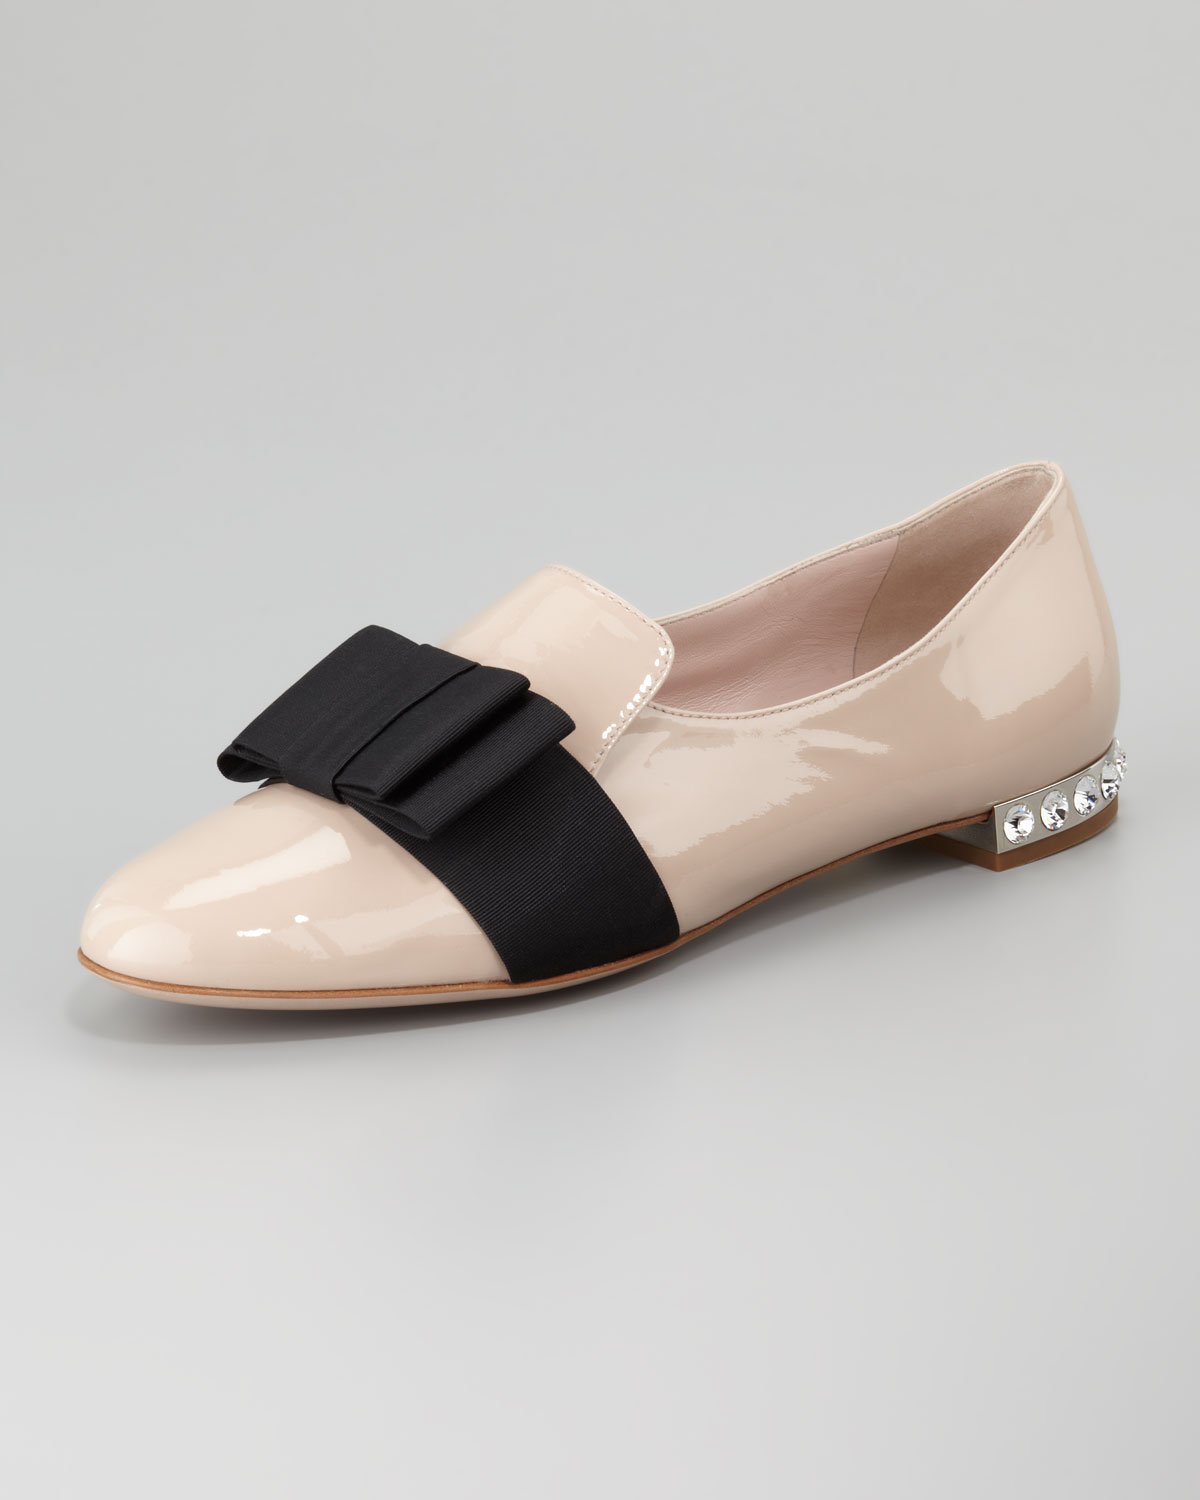 Miu Miu Leather Bow Flats buy cheap view tumblr discount 100% original L4NIIIi